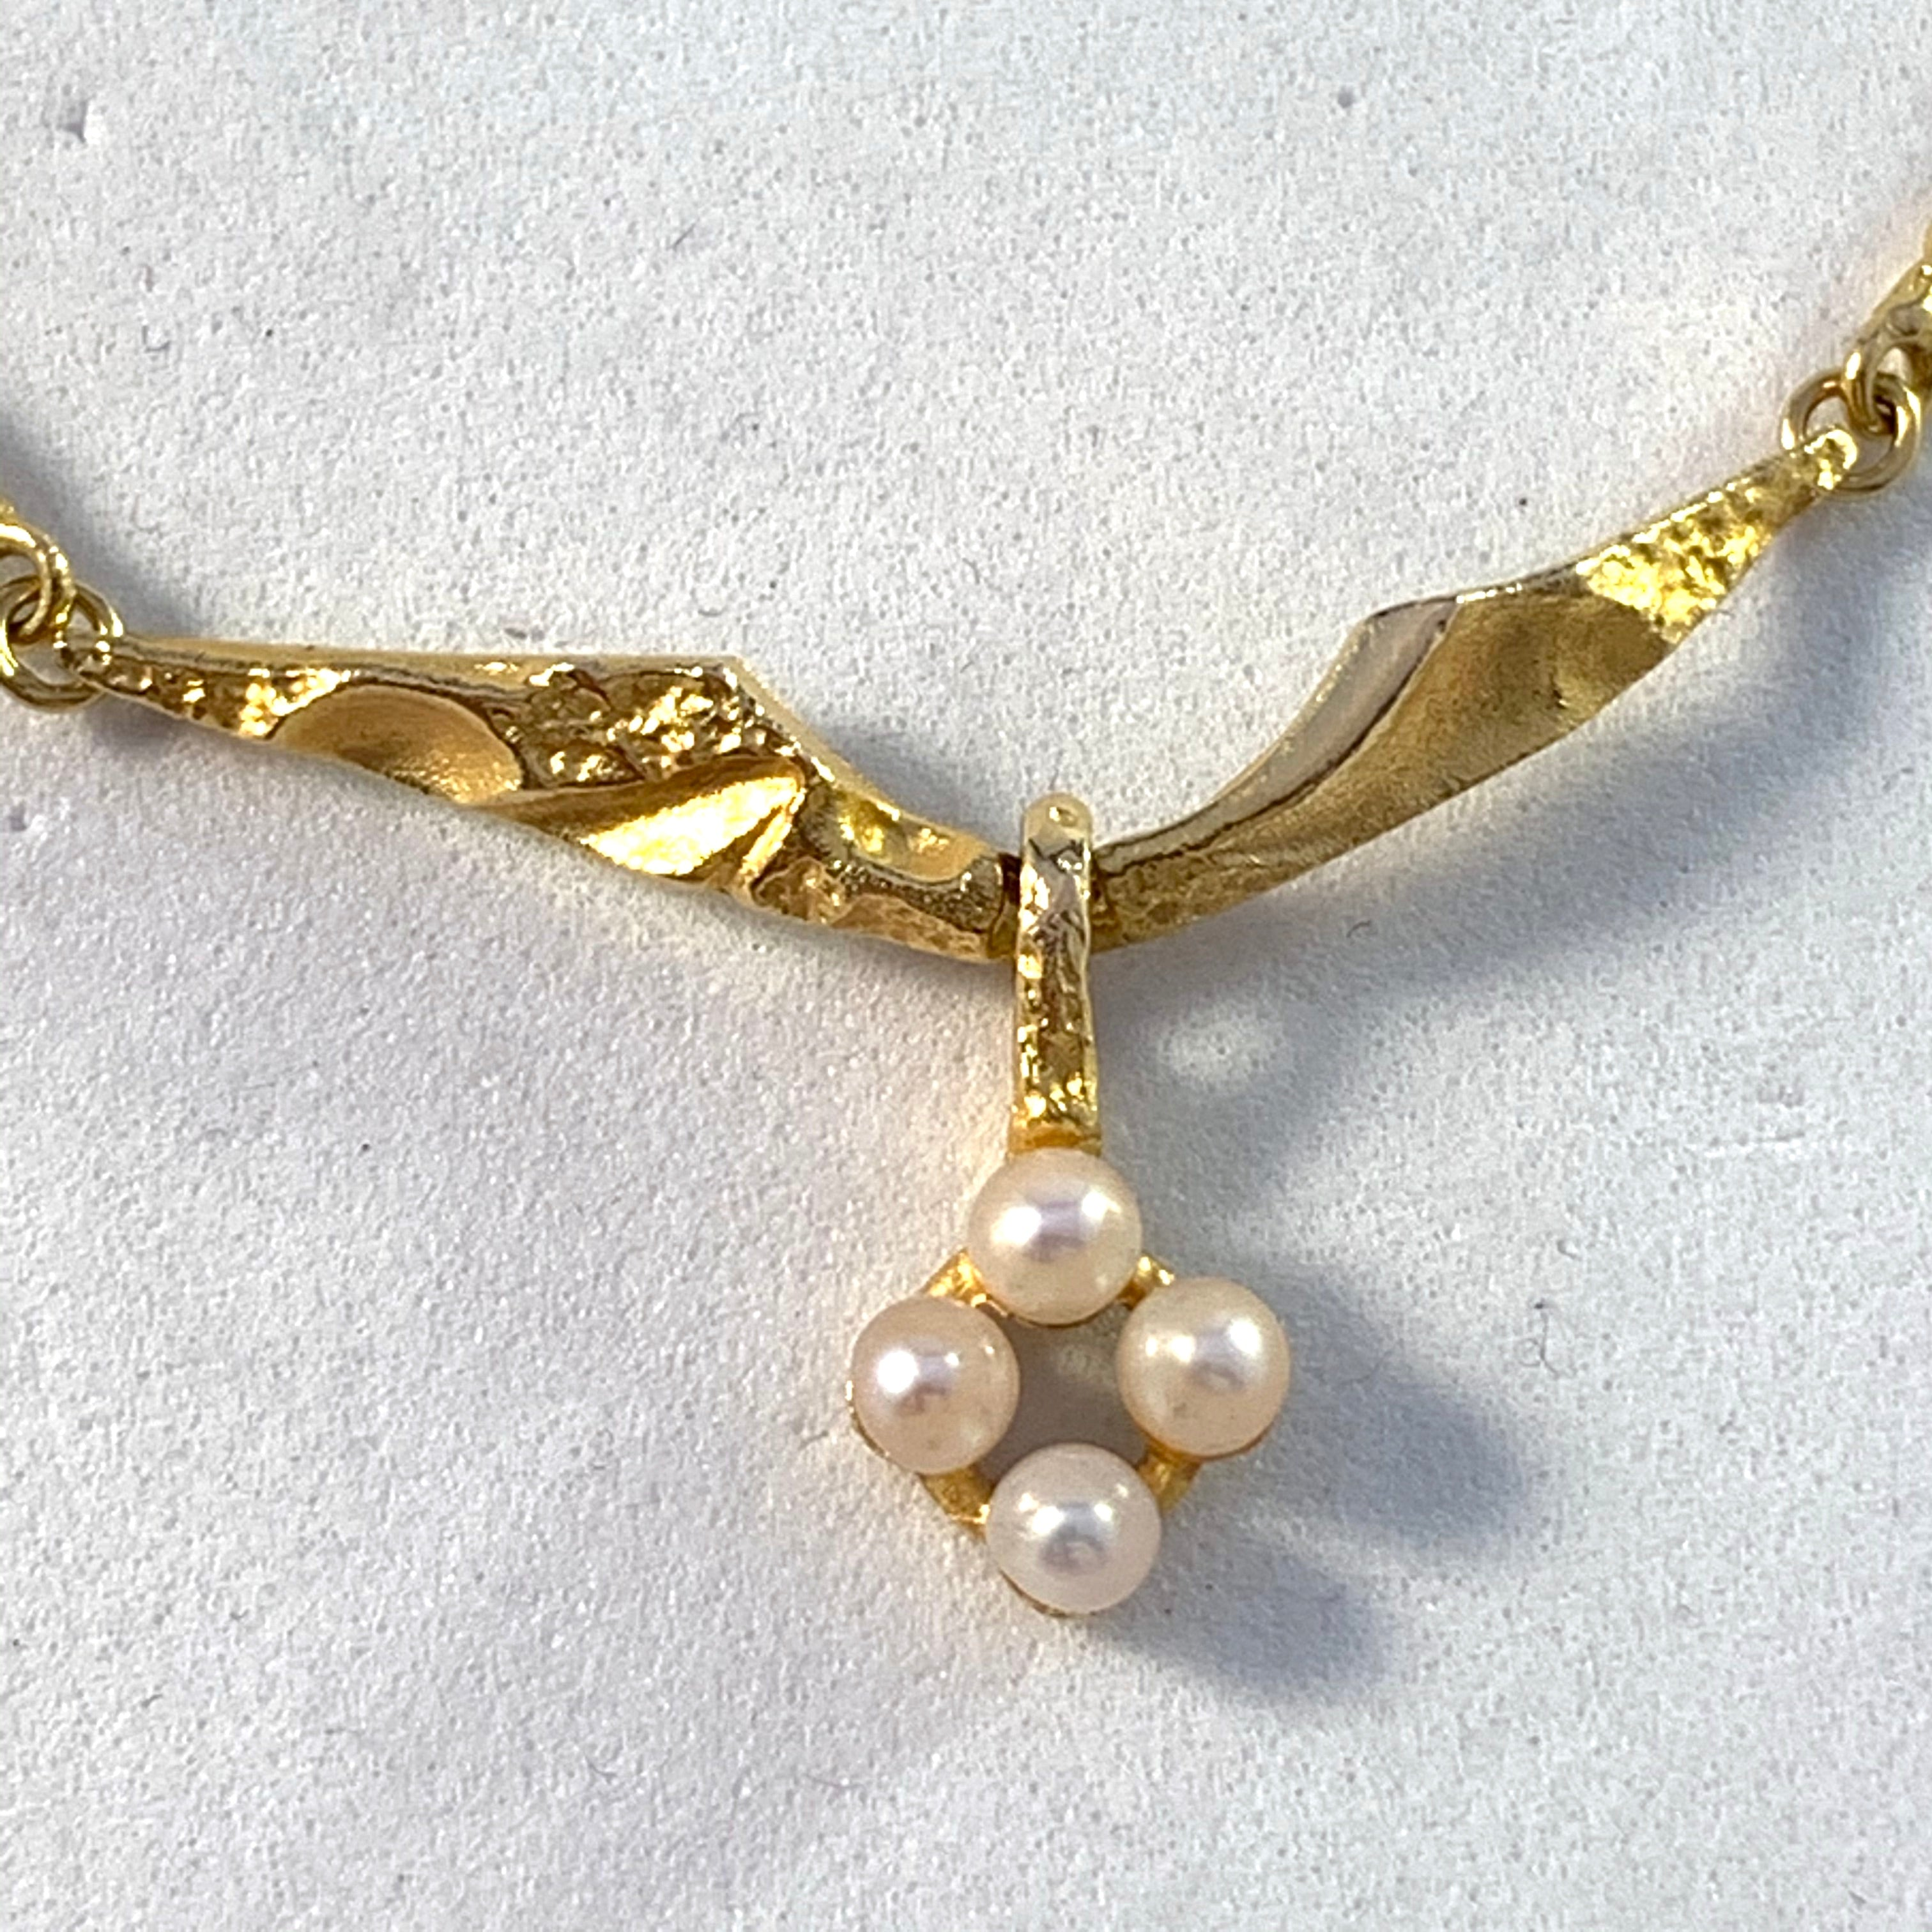 Lapponia, Finland Vintage 18k Gold Cultured Pearl Necklace.